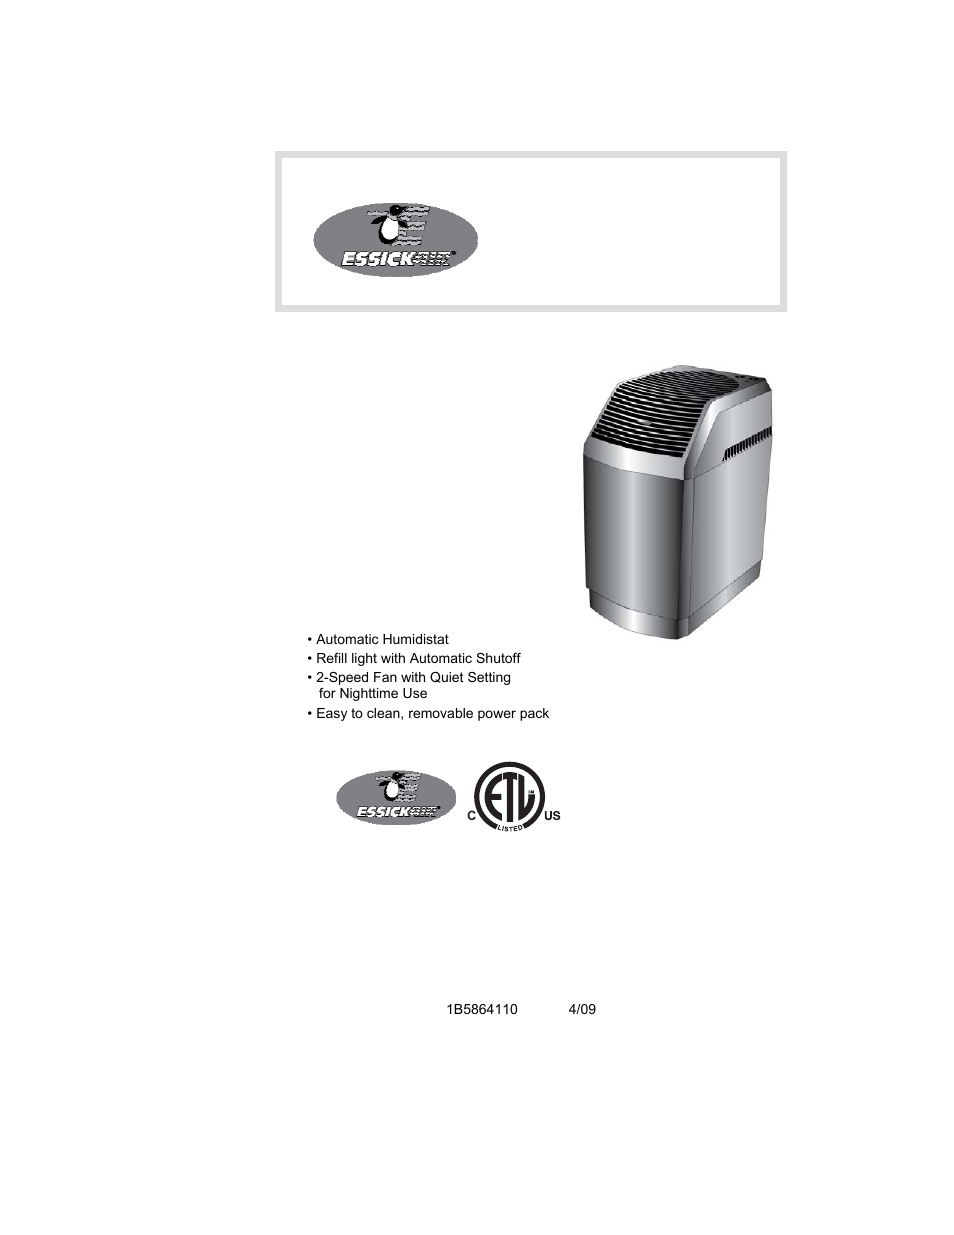 Essick Air 821 000 User Manual 19 Pages